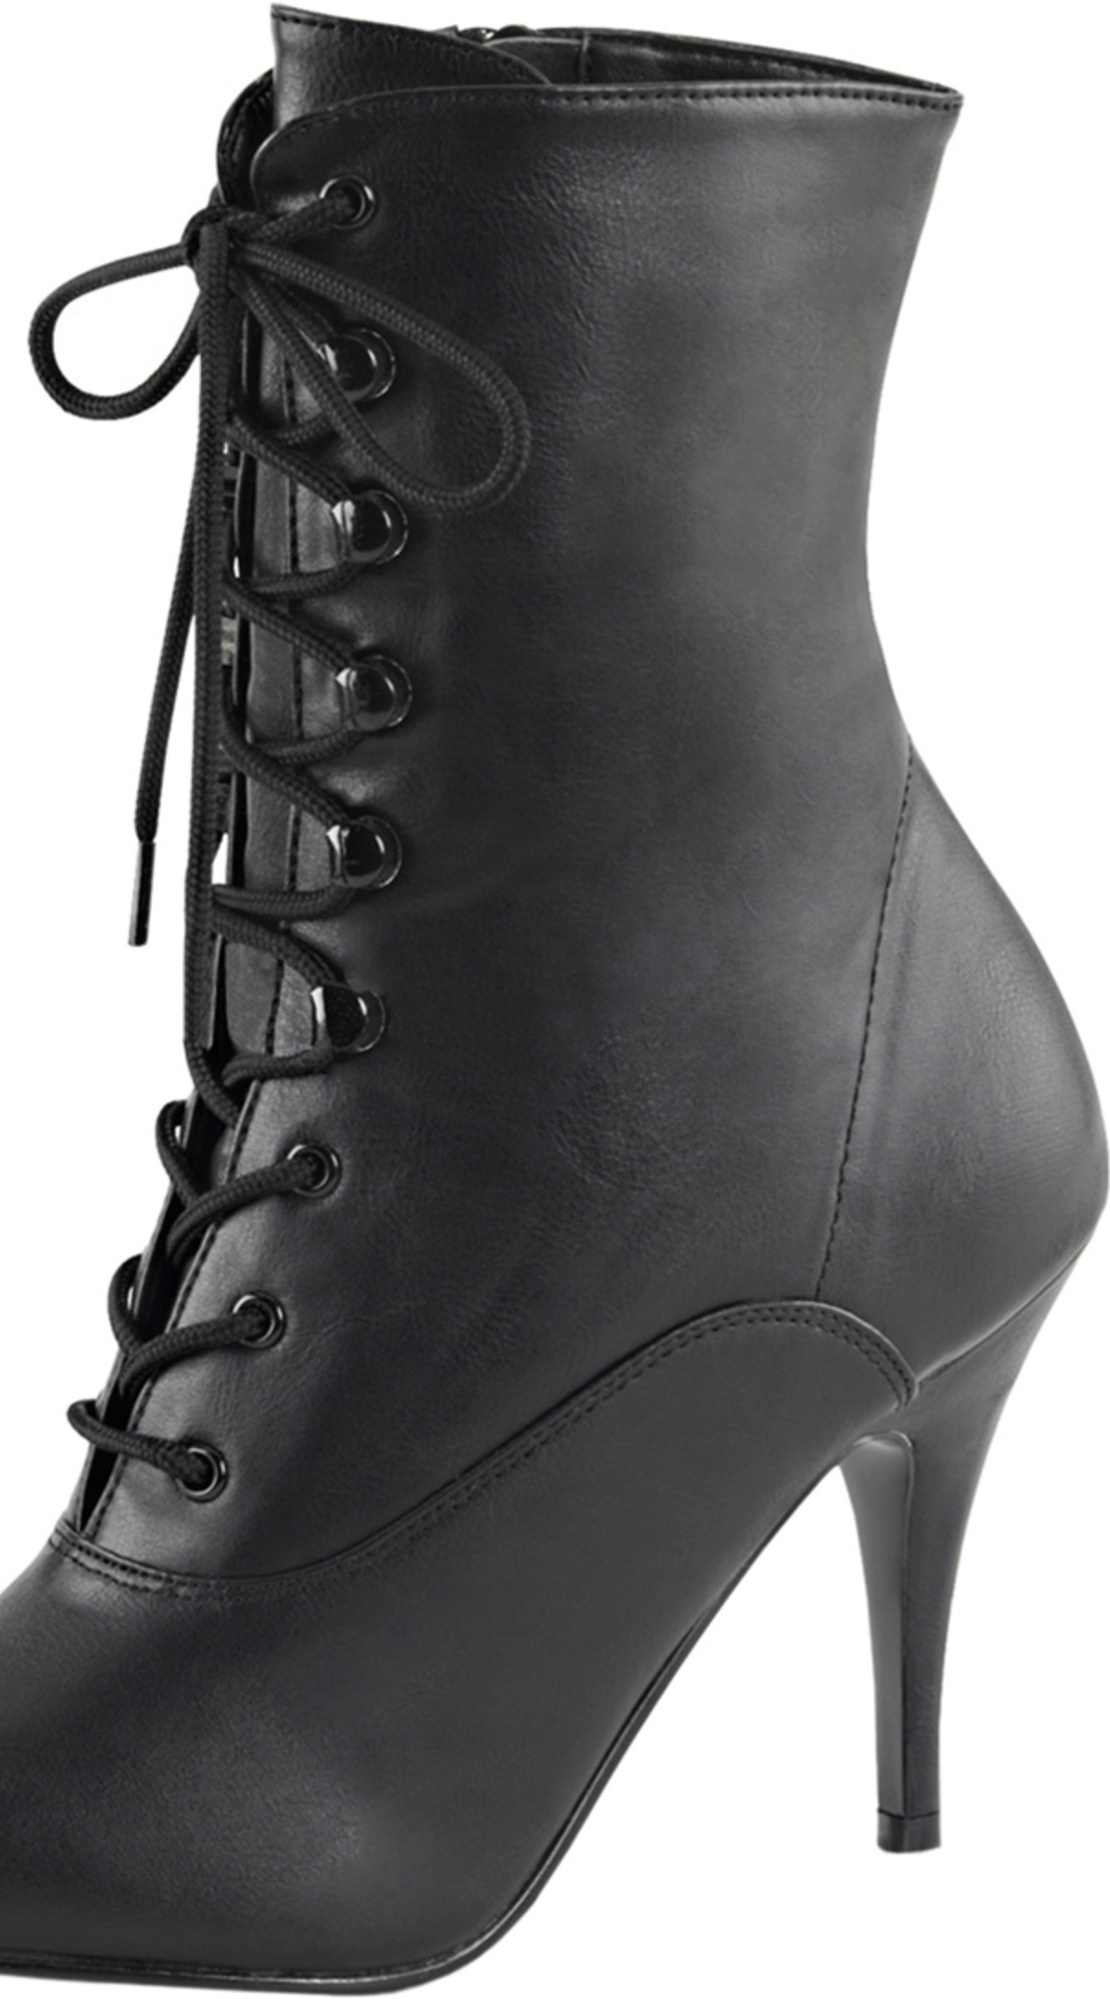 Womens Pointed Toe Boots Lace Up Booties Black Side Zipper Ankle 4 Inch Heels